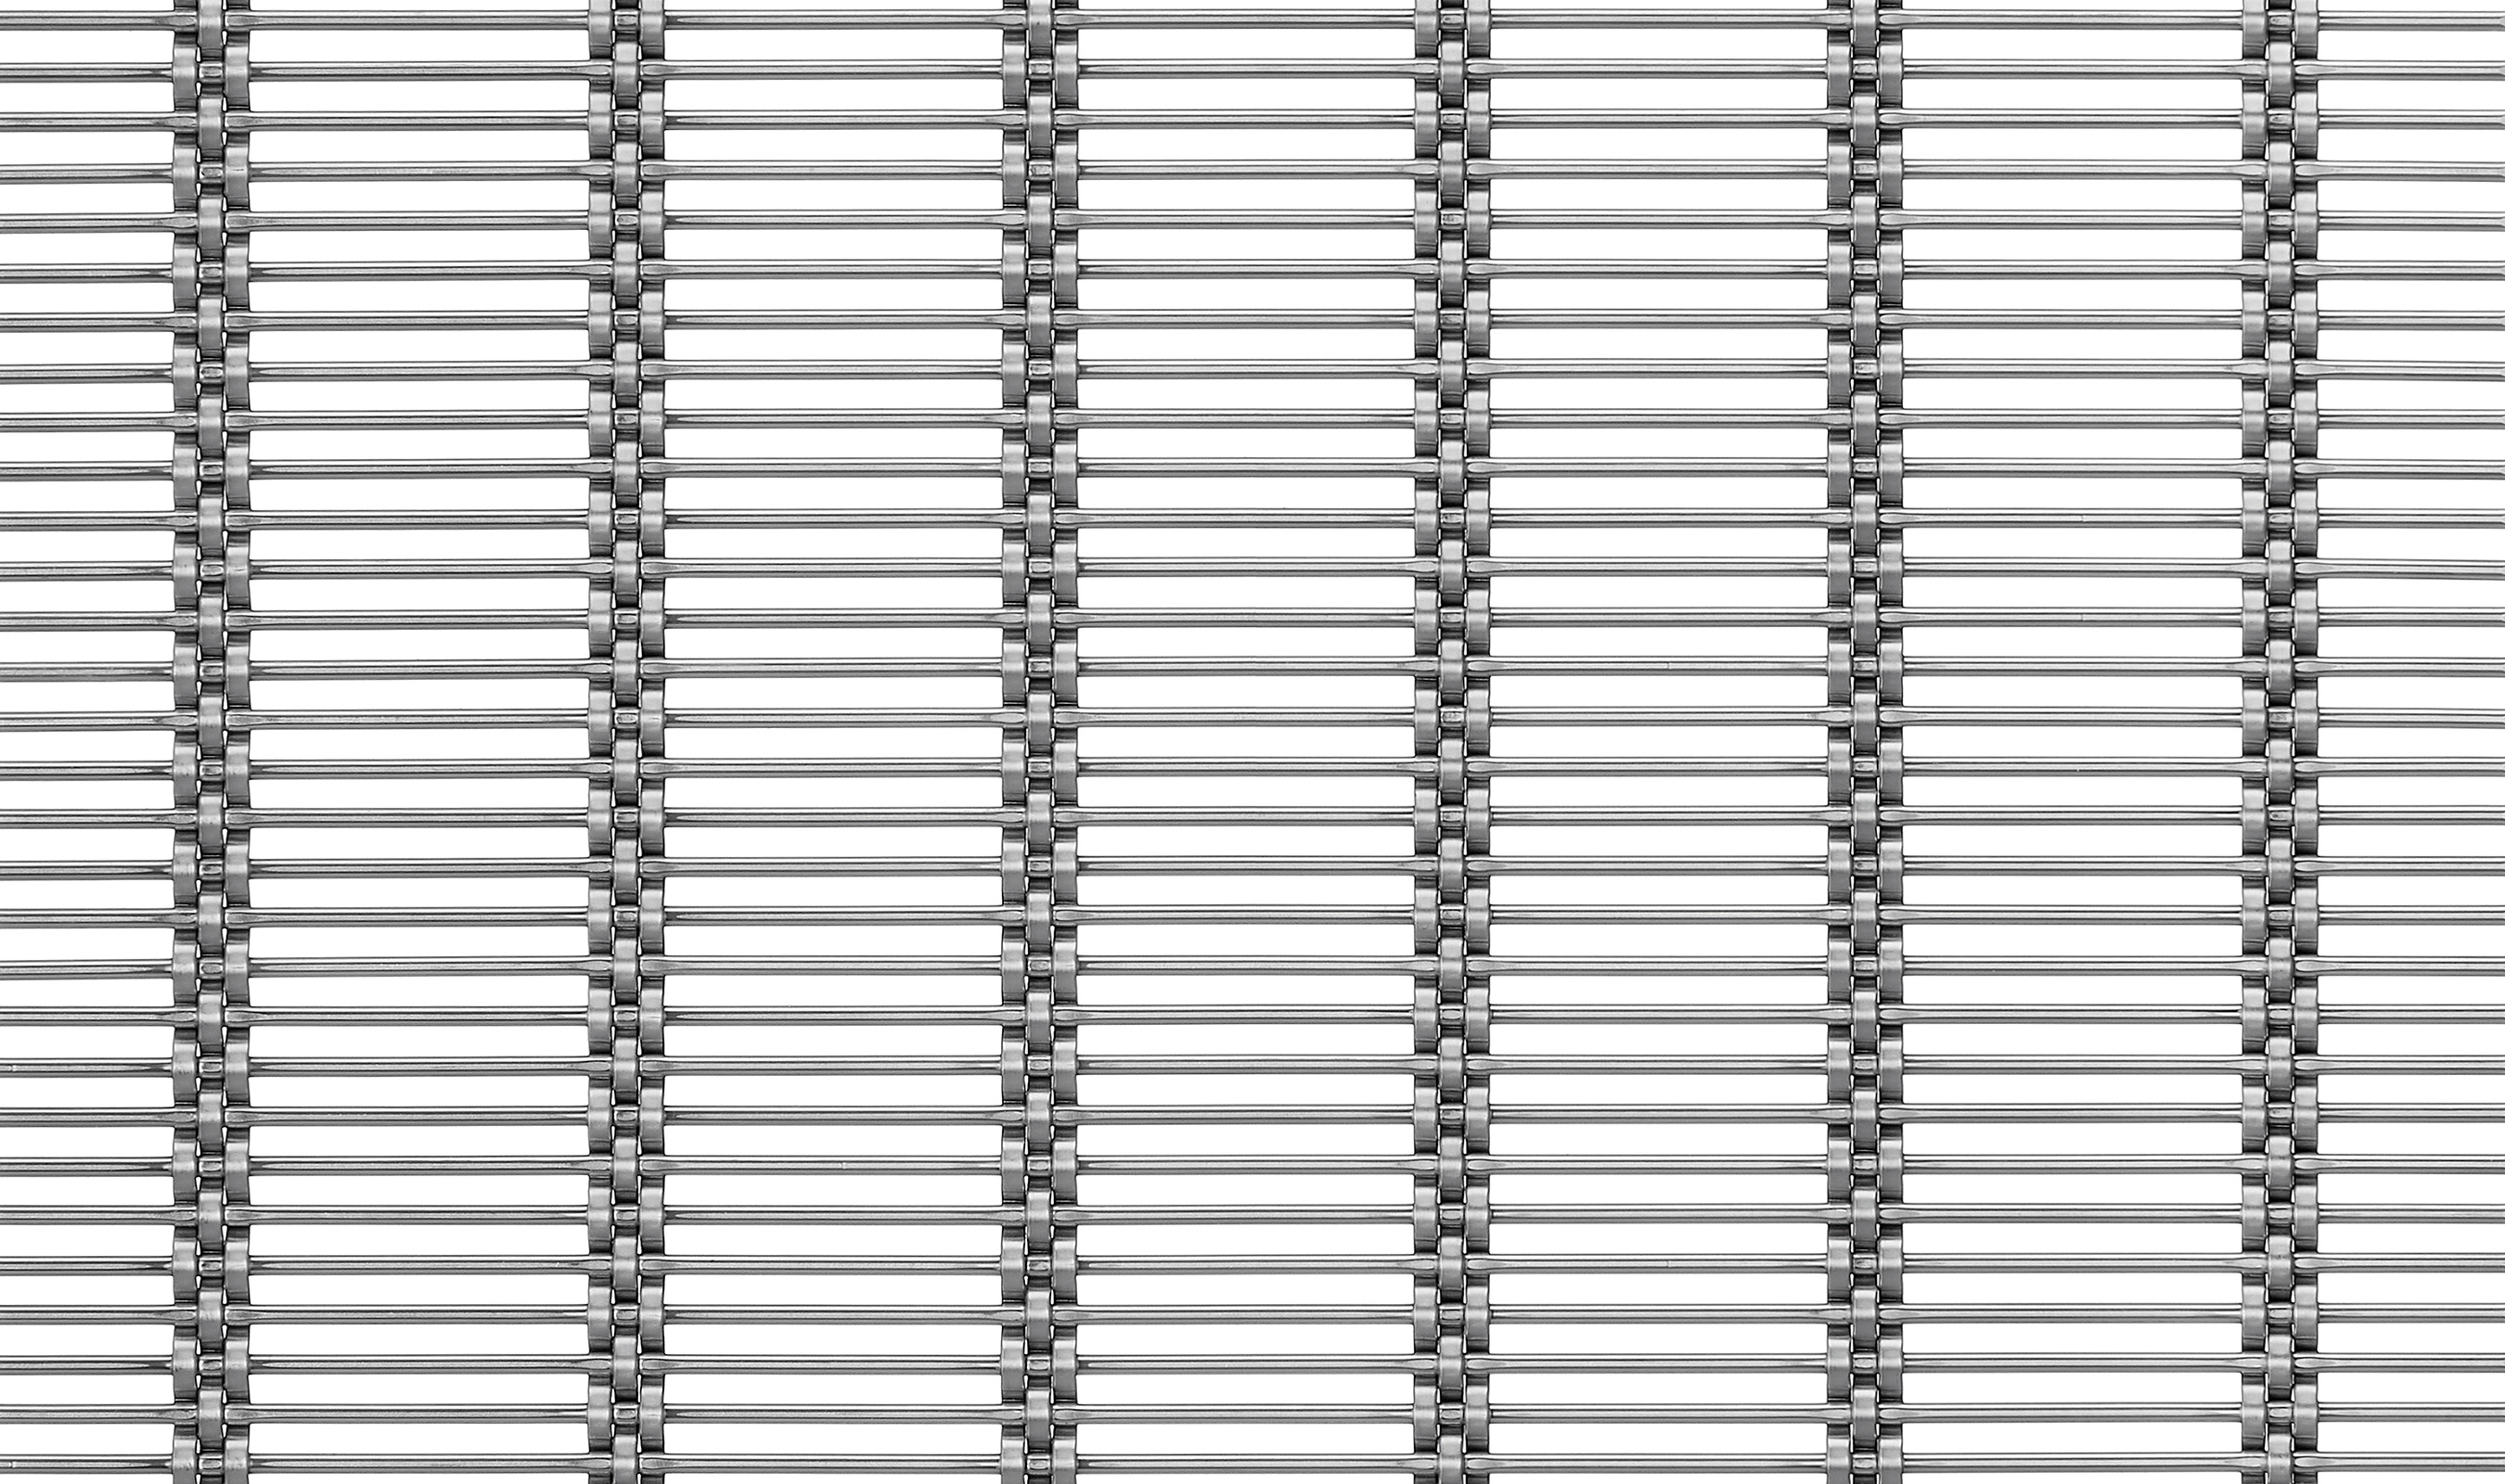 M13Z-382 rectangular decorative wire mesh mixing round and flat wires